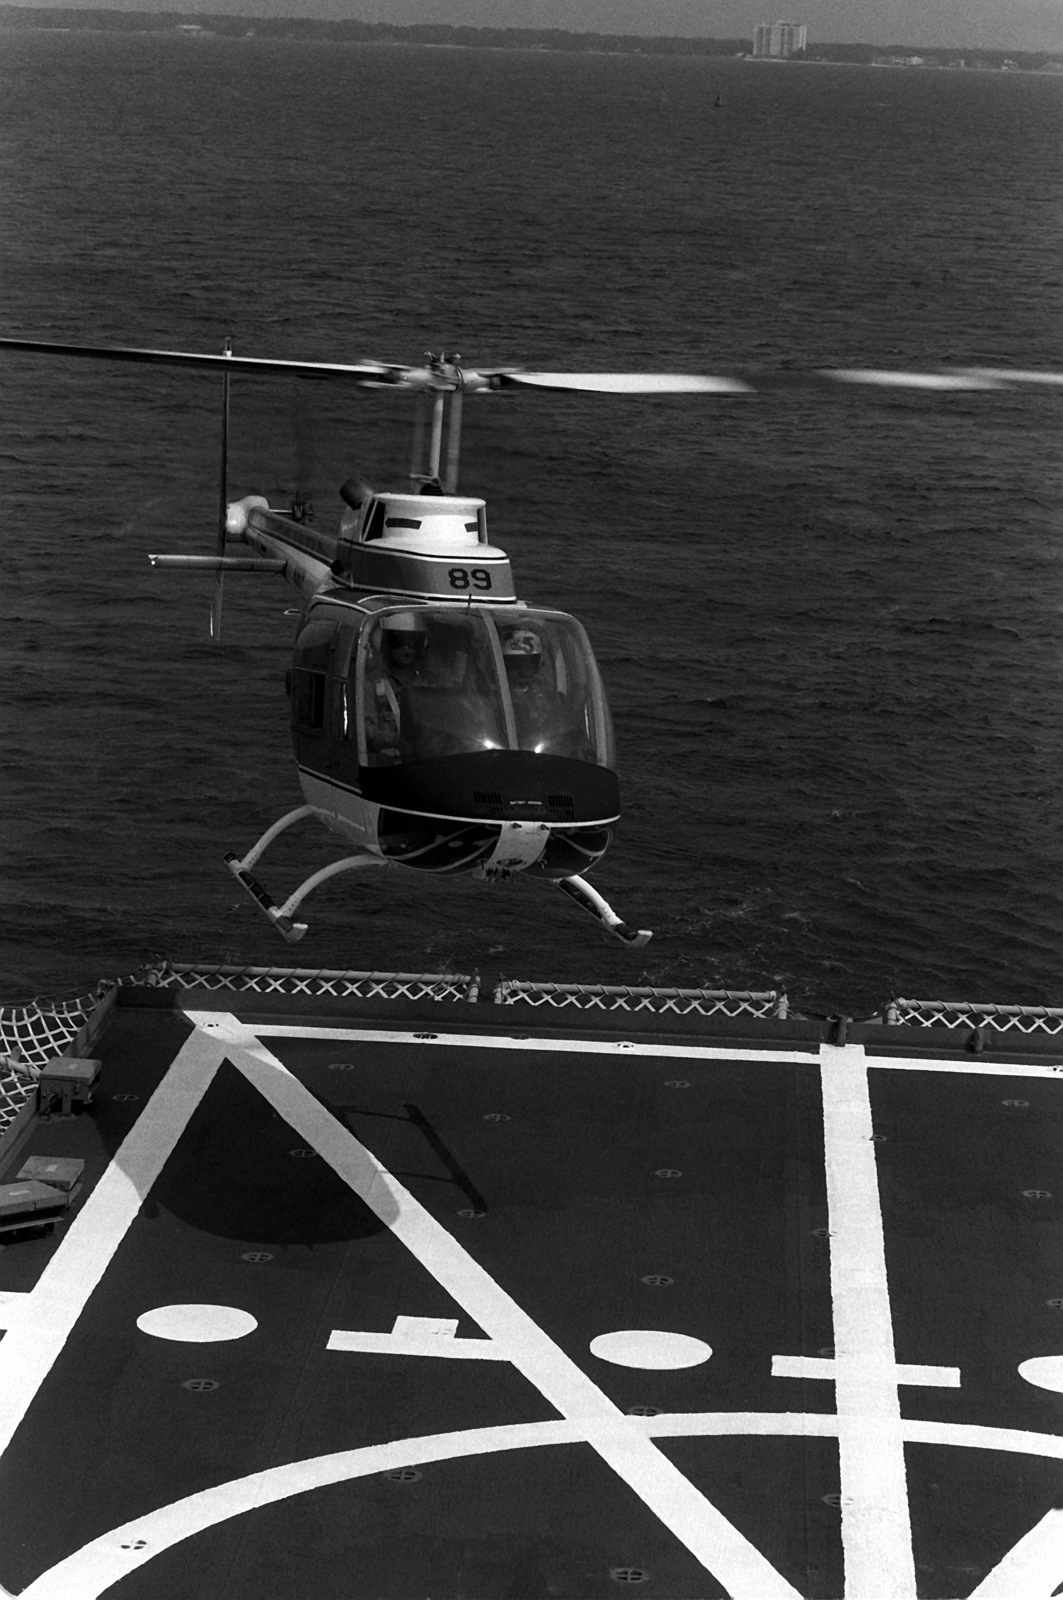 A Training Wing 5 (TAW-5) TH-57 Sea Ranger helicopter hovers over the flight deck of the helicopter landing trainer IX-514. The trainer, a converted harbor utility craft, is based at Naval Air Station, Pensacola, Florida